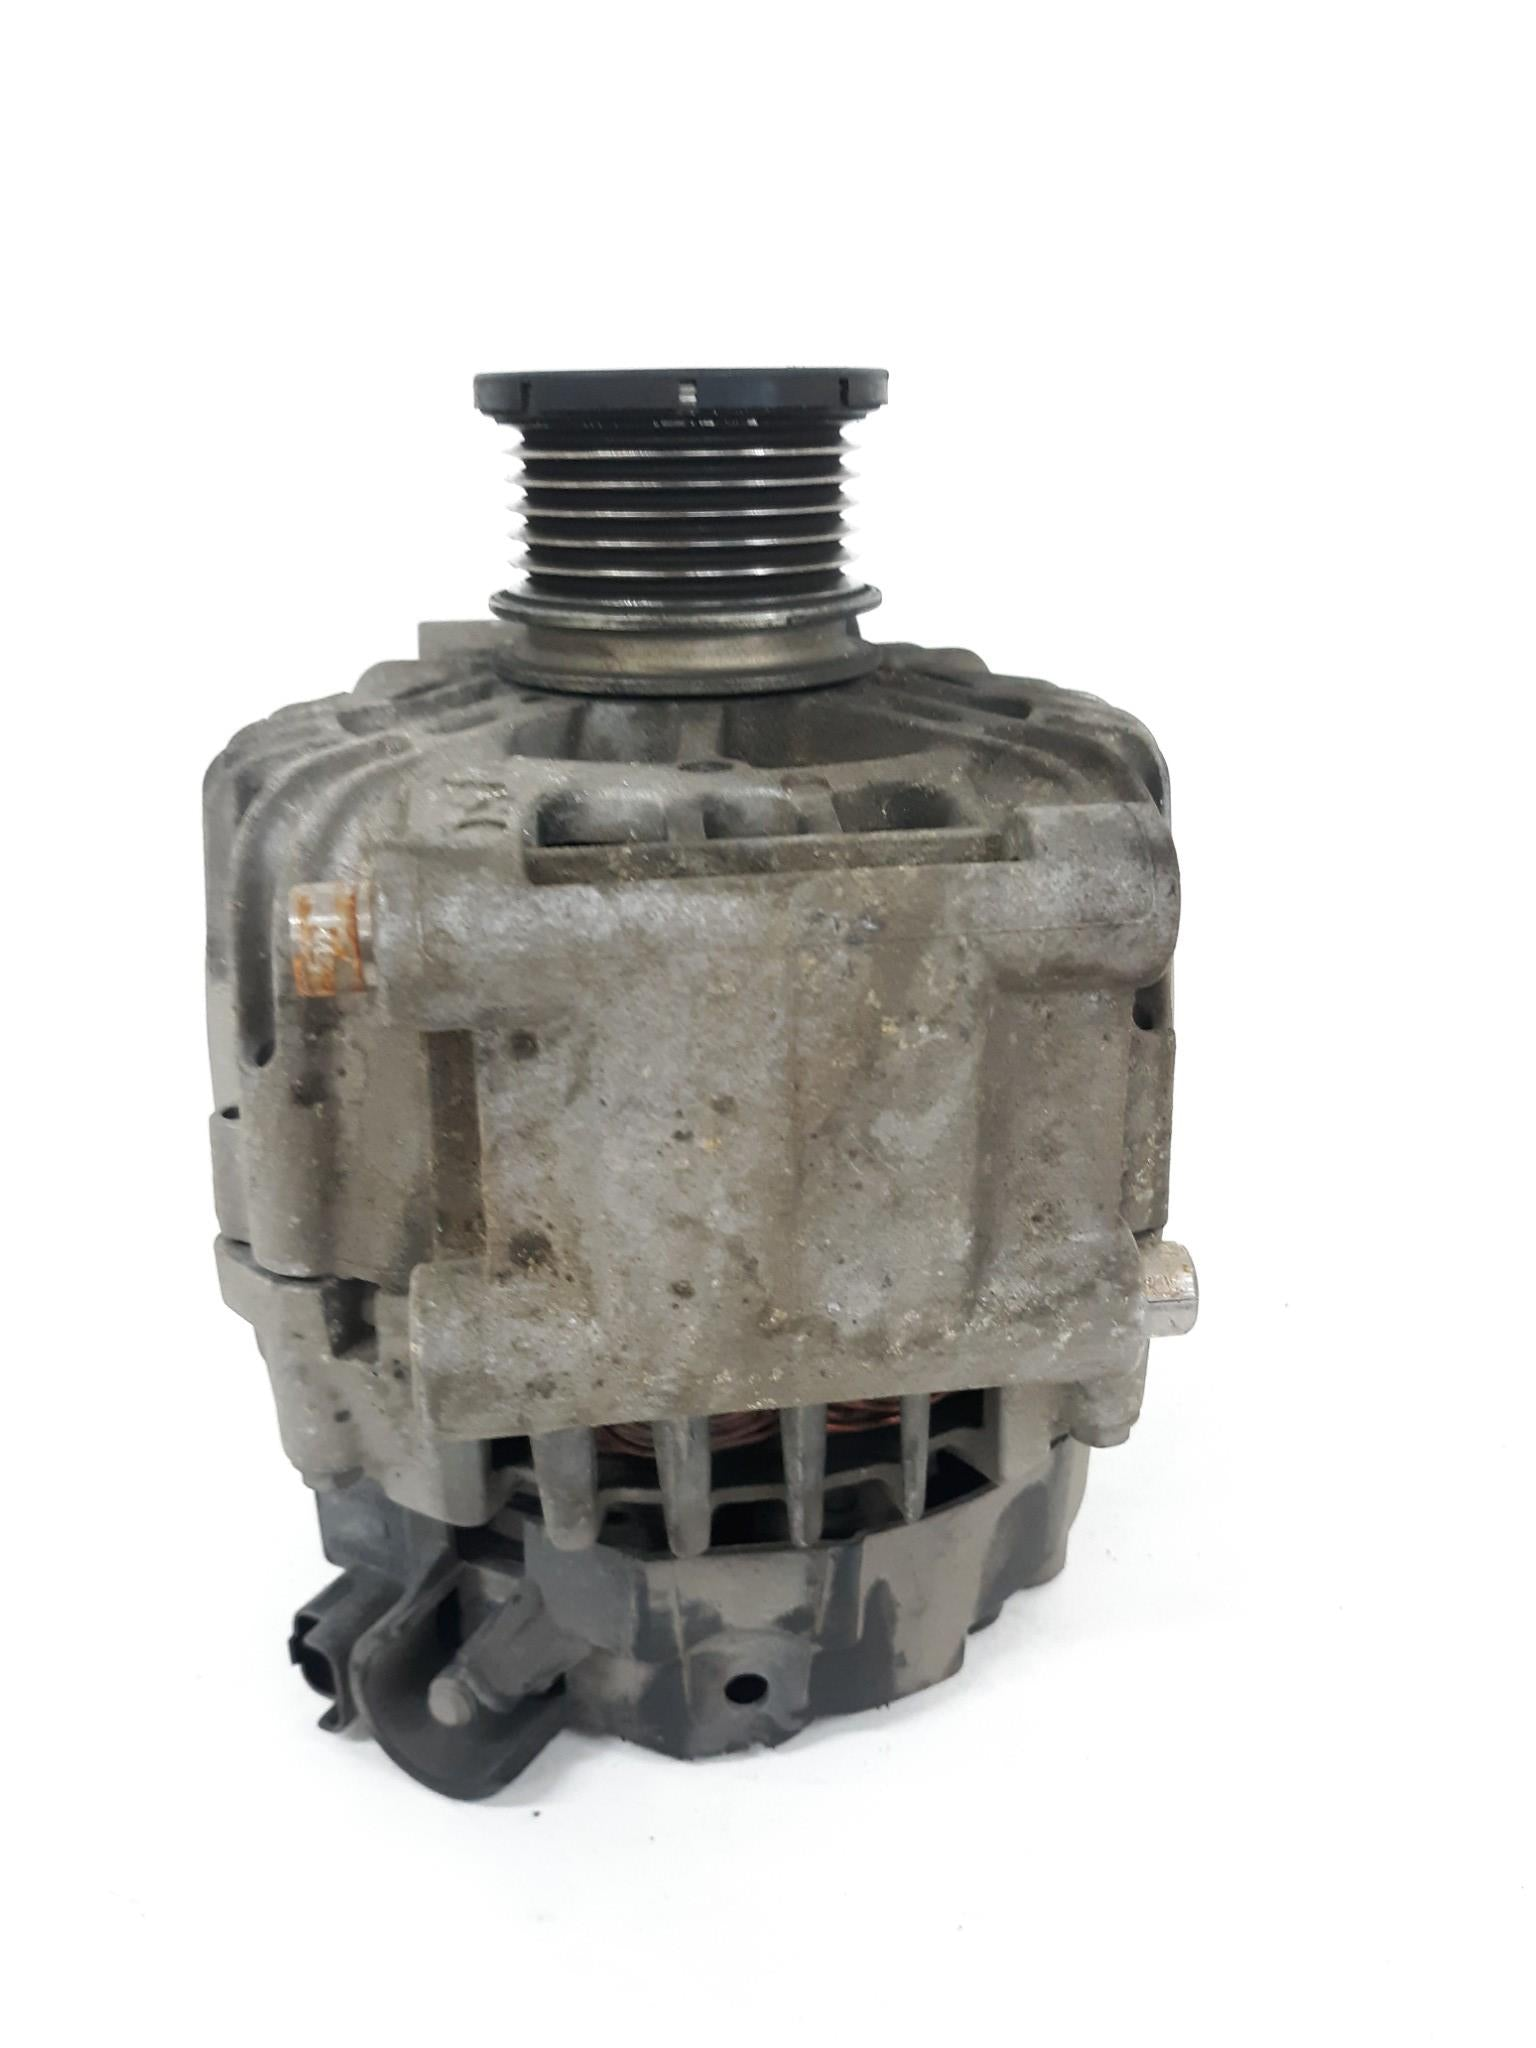 2007-2015 Mini Cooper R55-R61 VALEO Alternator Generator 7576513 OEM - Click Receive Auto Parts